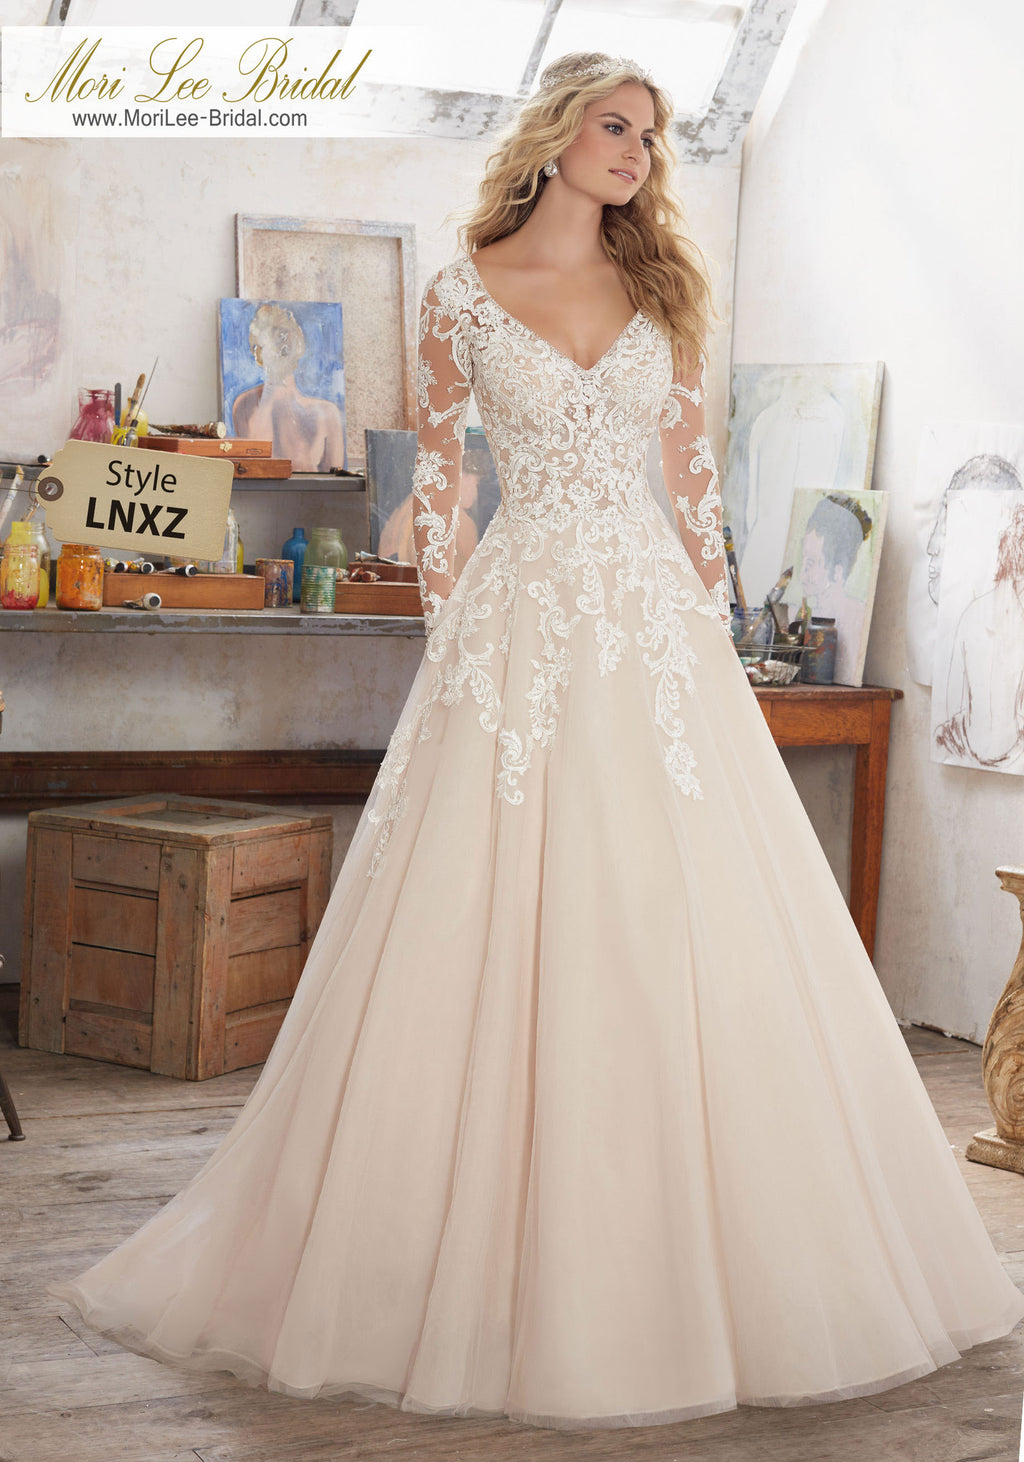 LNXZ - Mori Lee Bridal